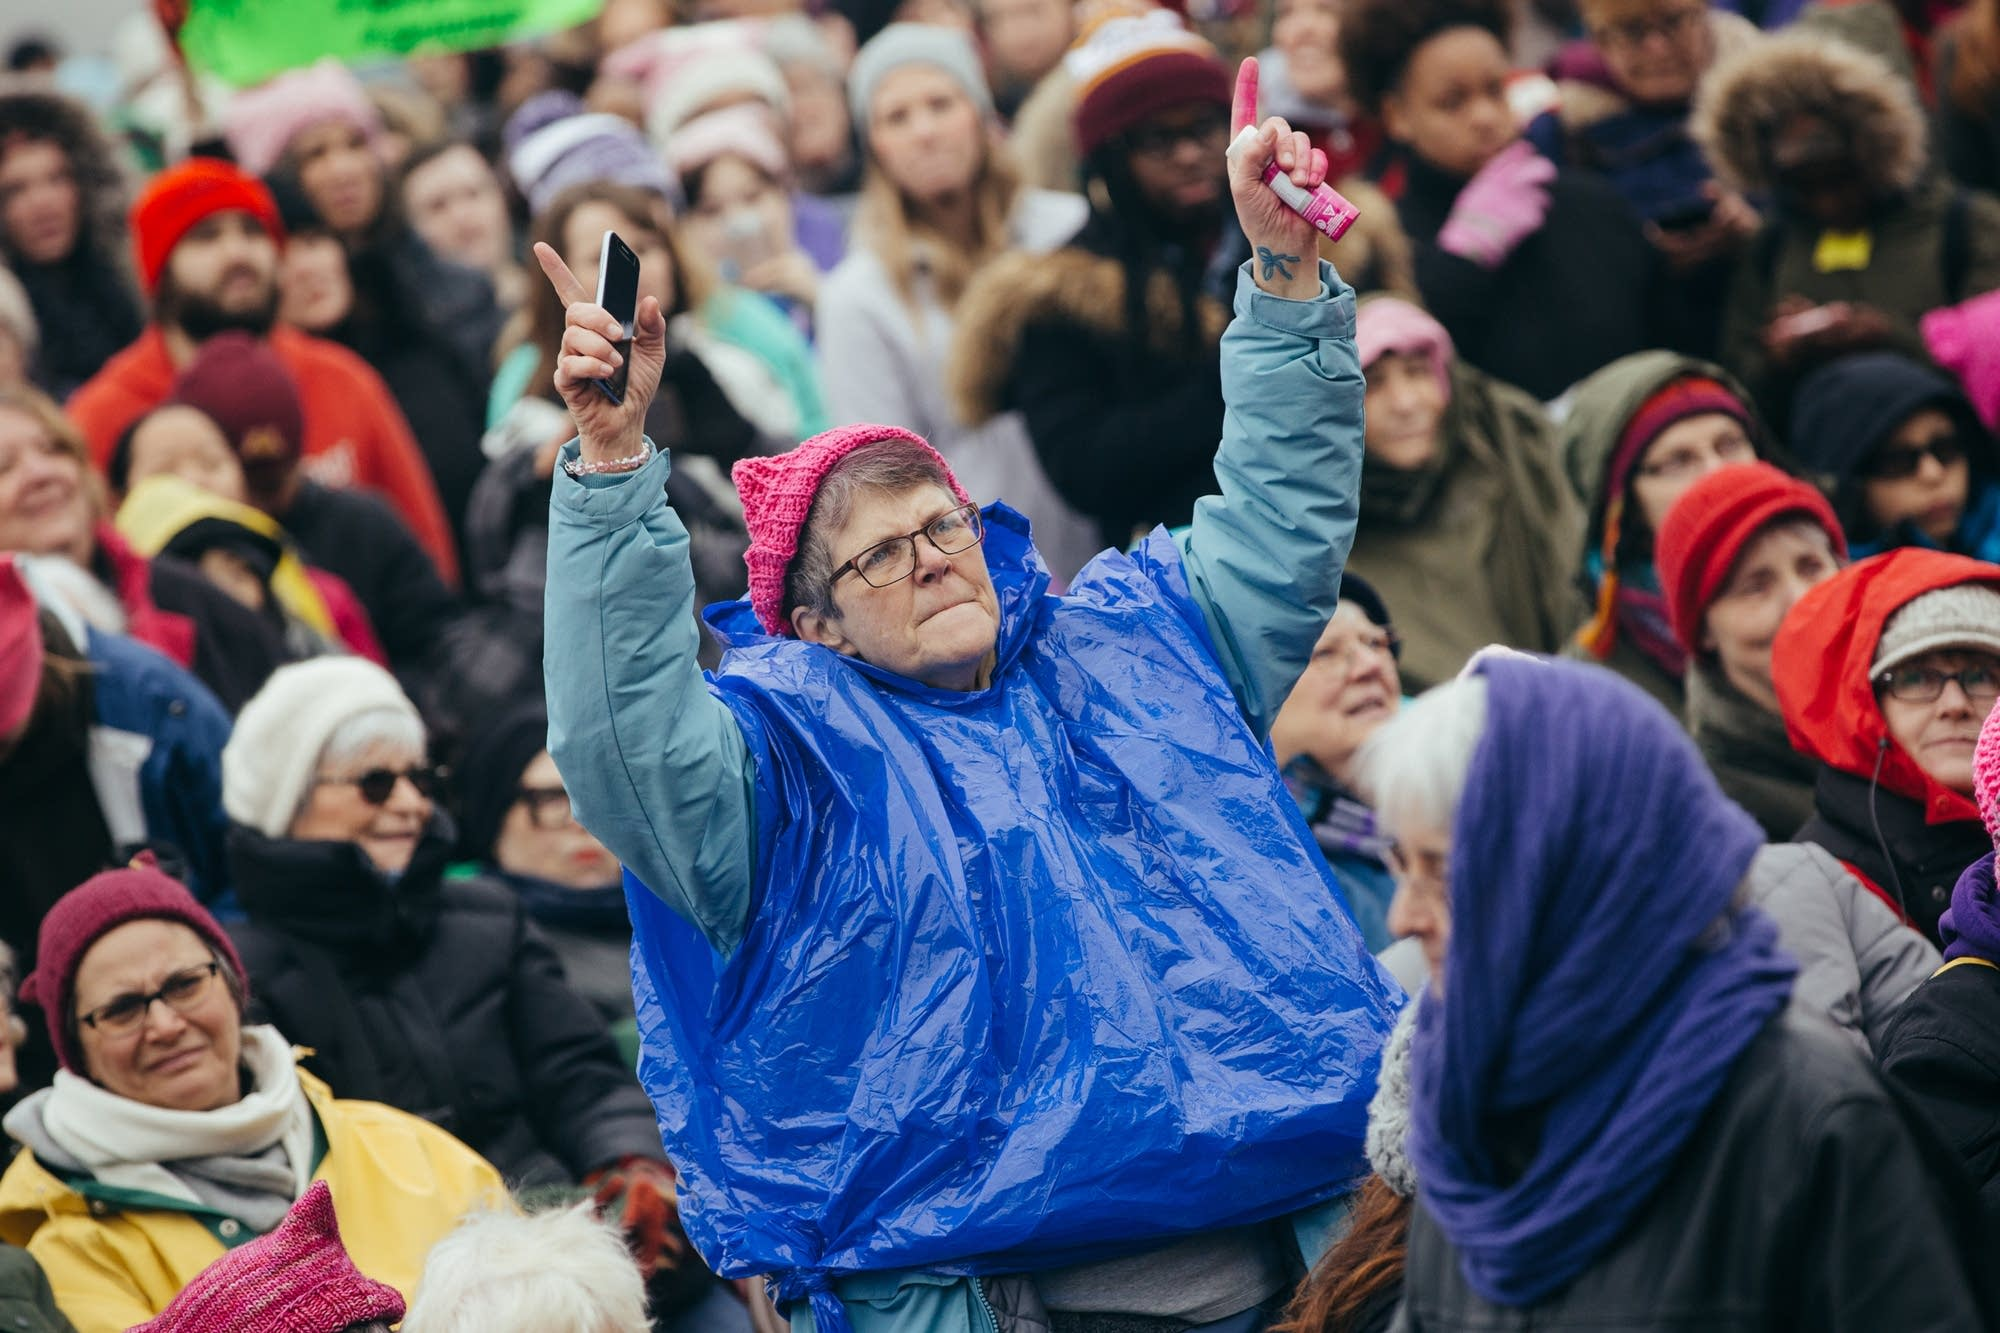 A demonstrator dances in the crowd.